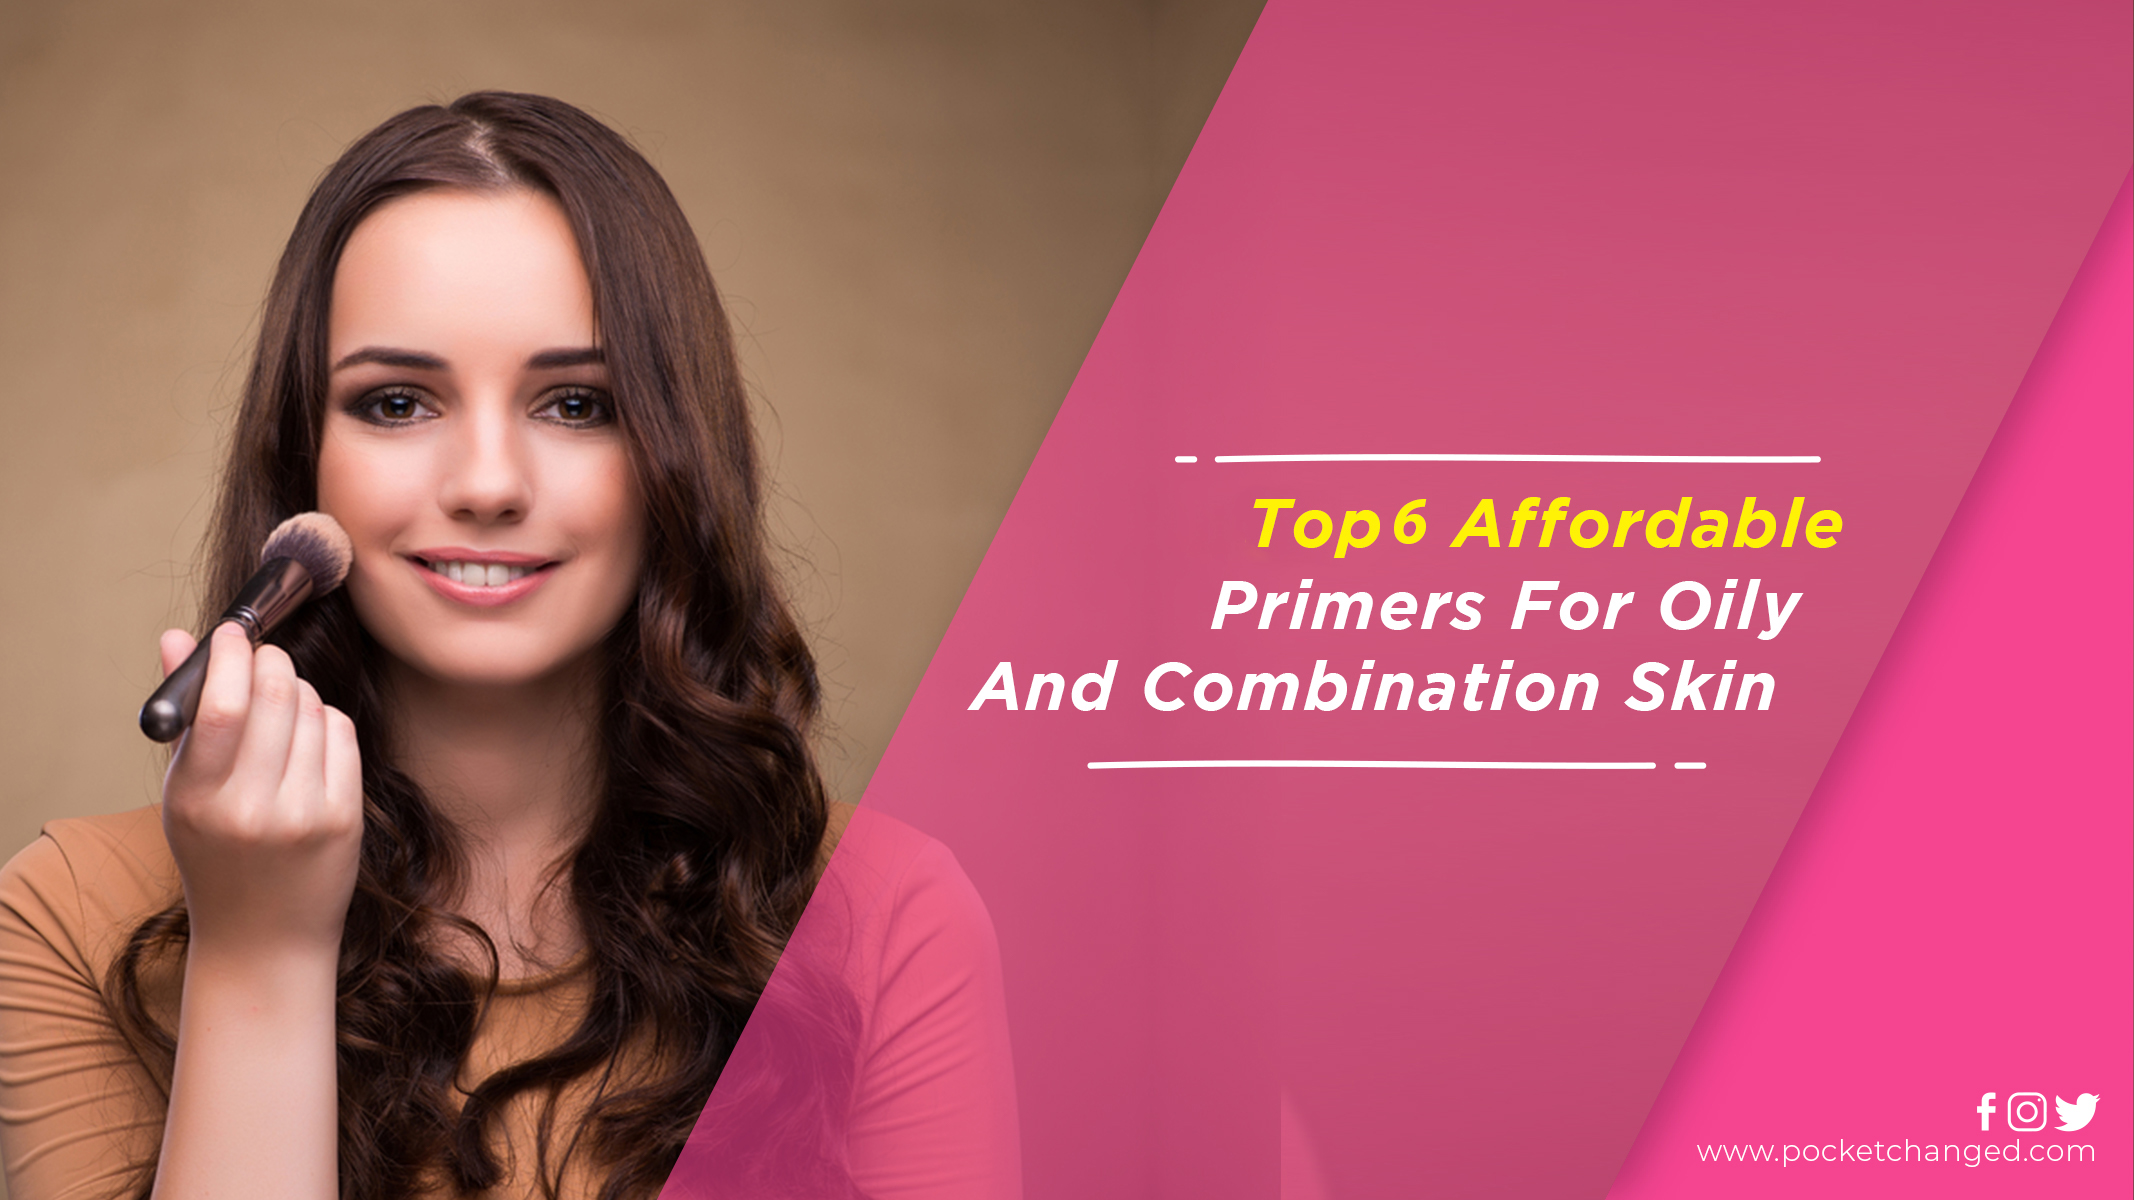 top 6 affordable primers for oily and combination skin